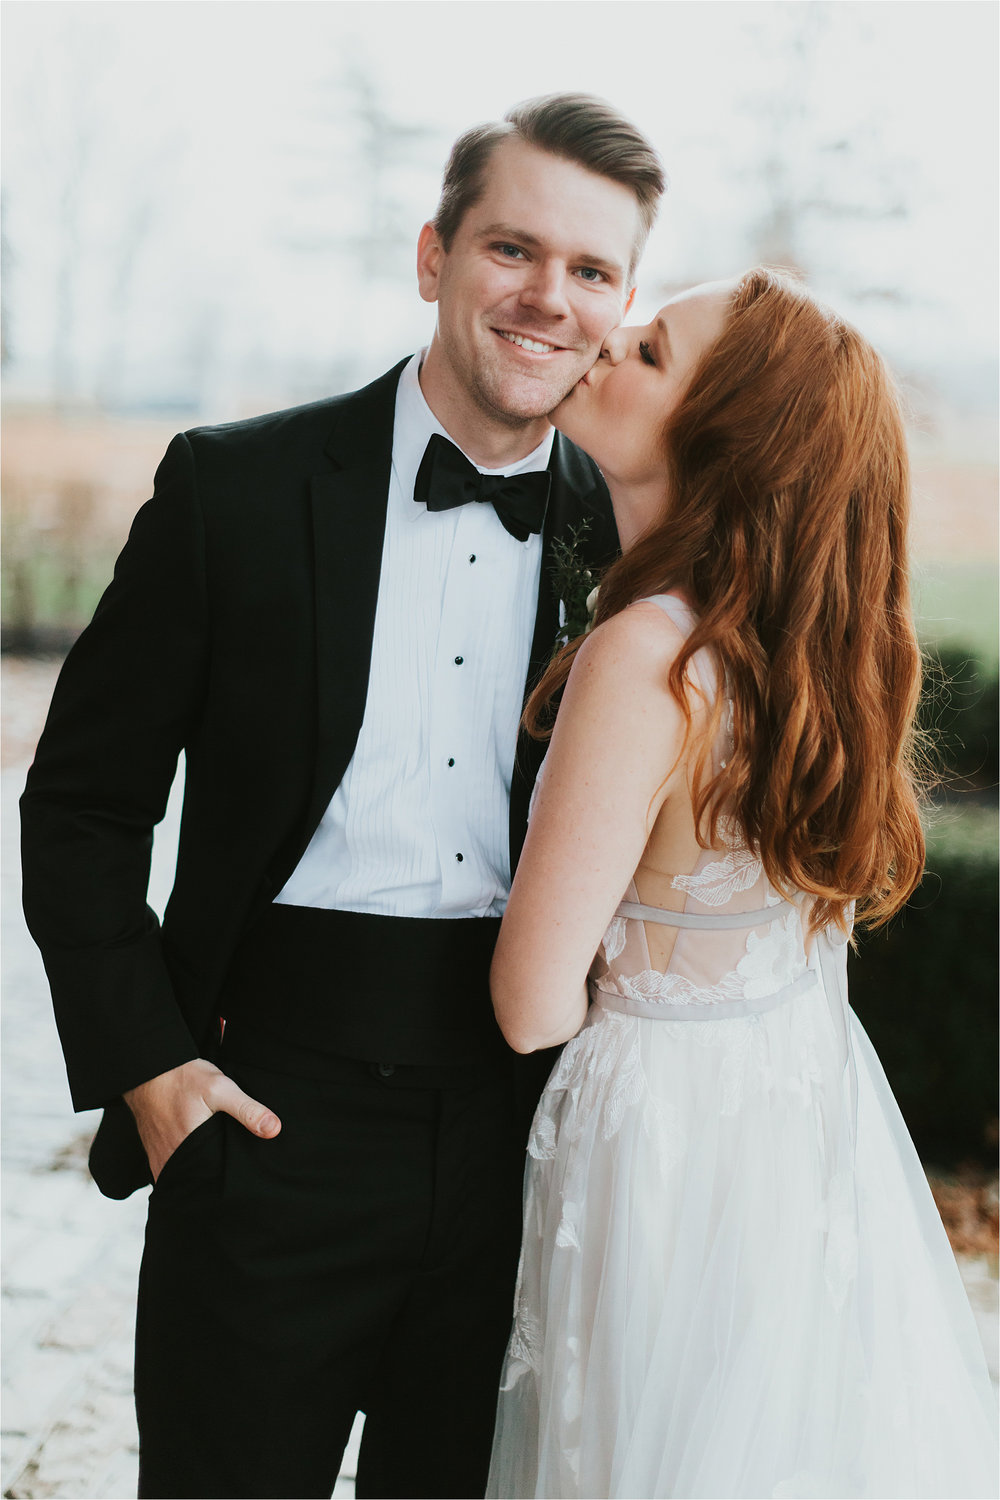 NashvilleWedding_NewYearsEveWedding_NYE_NashvilleWeddingPhotographer_LovelessWedding_Tennessee_MollyPeachPhotography-51.jpg